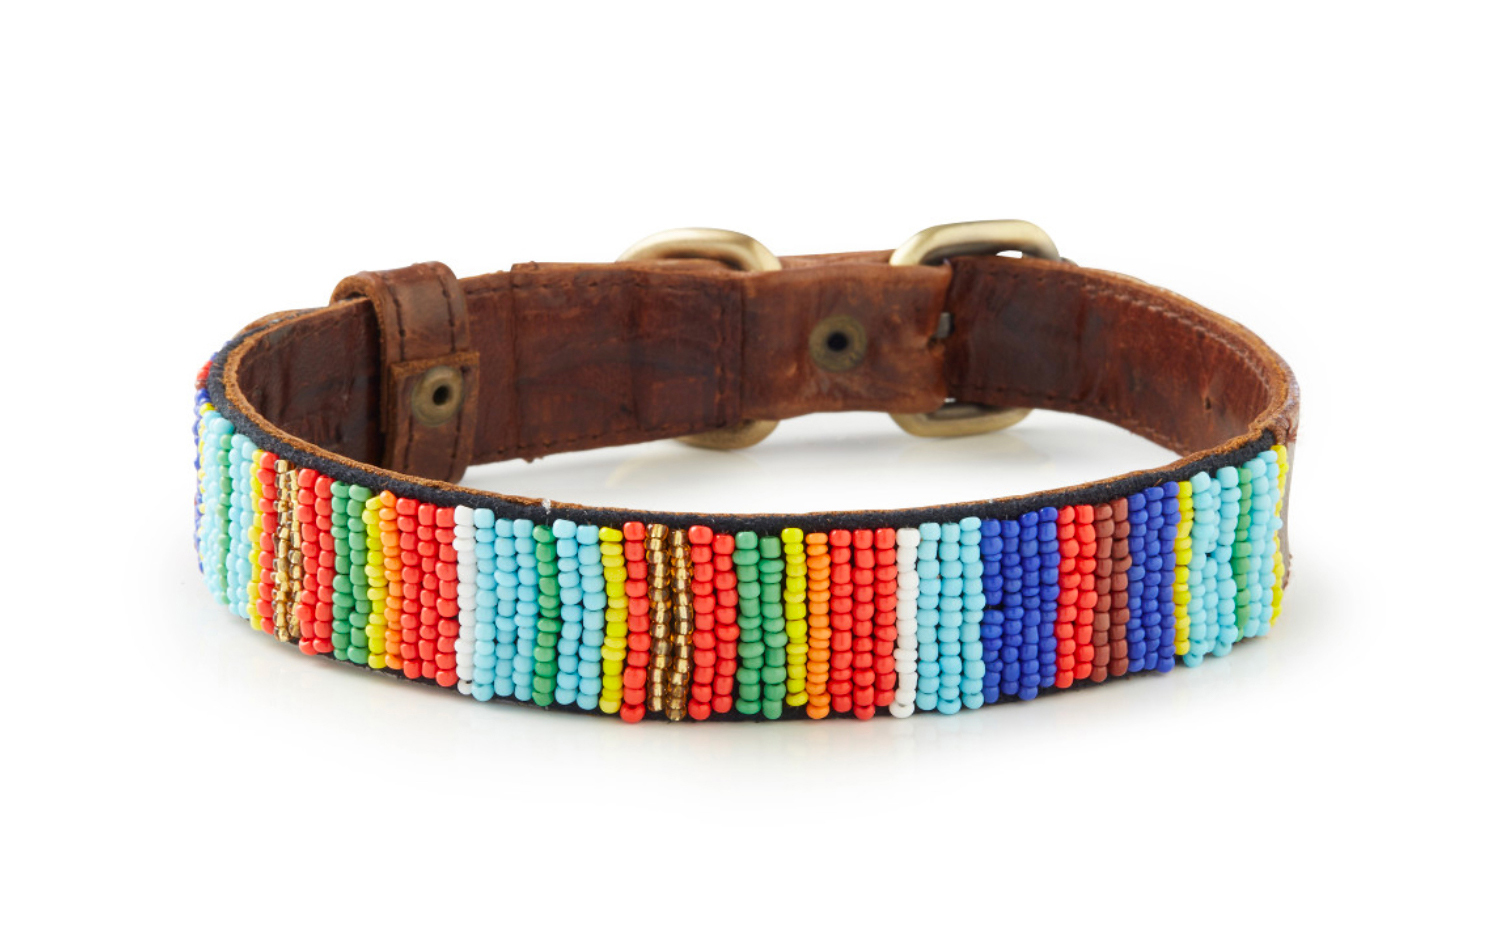 Dreamland - Hand Beaded Italian Leather Dog Collar